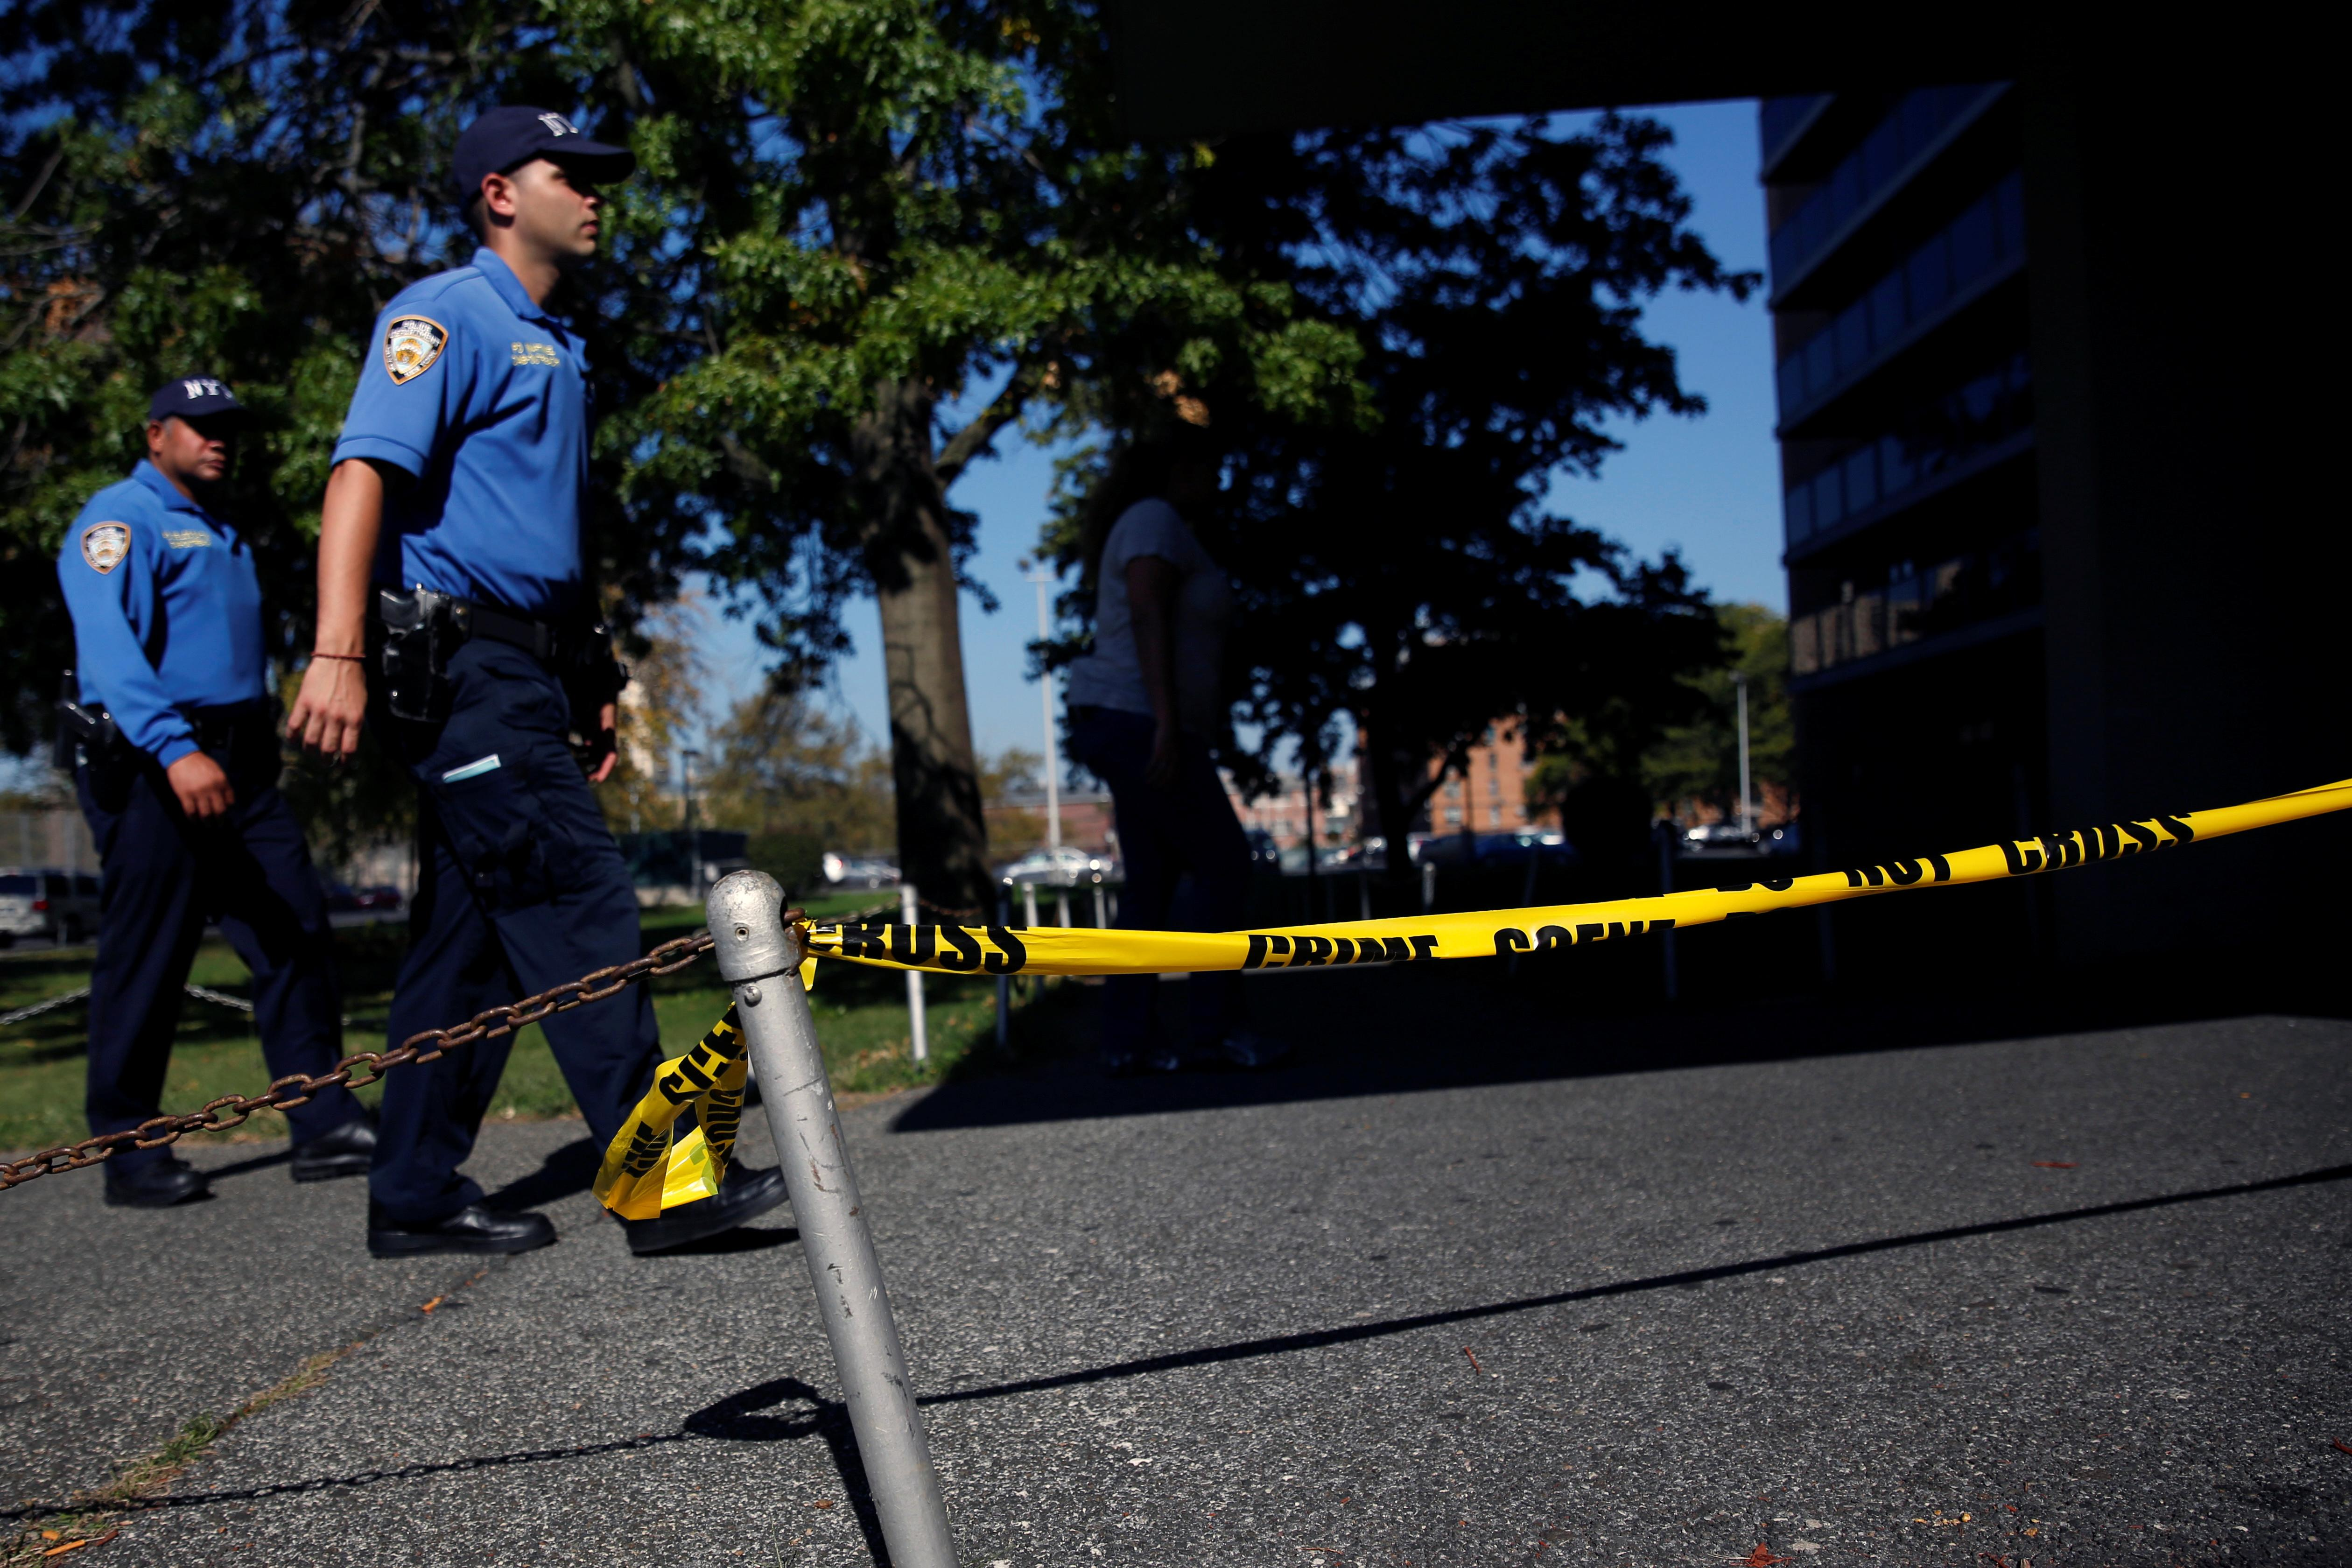 NYC To Pay For NYPD